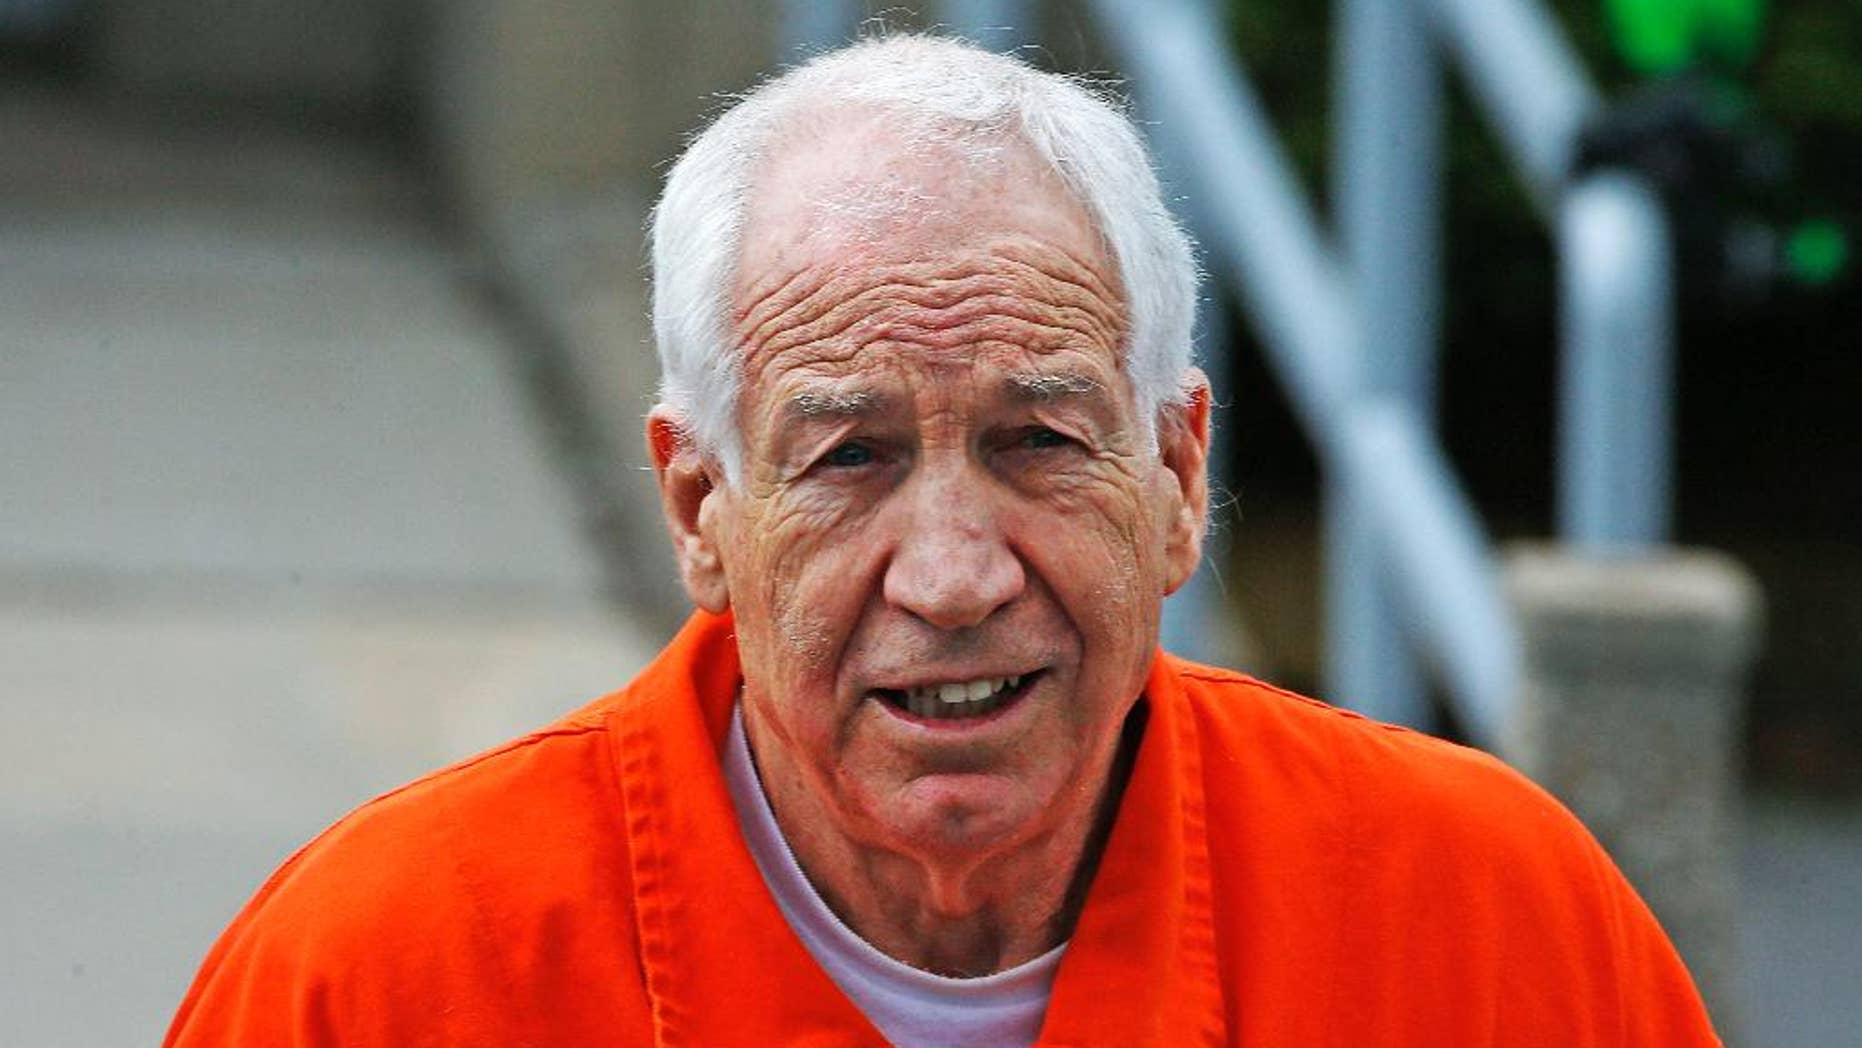 FILE - In this Monday, May 2, 2016, file photo, former Penn State University assistant football coach Jerry Sandusky leaves the Centre County Courthouse after a hearing of arguments on his request for an evidentiary hearing as he seeks a new trial in Bellefonte, Pa. Sandusky has been moved Feb. 27, 2017 from a maximum-security prison to a medium-security facility, State Correctional Institution-Somerset, in western Pennsylvania. (AP Photo/Gene J. Puskar)